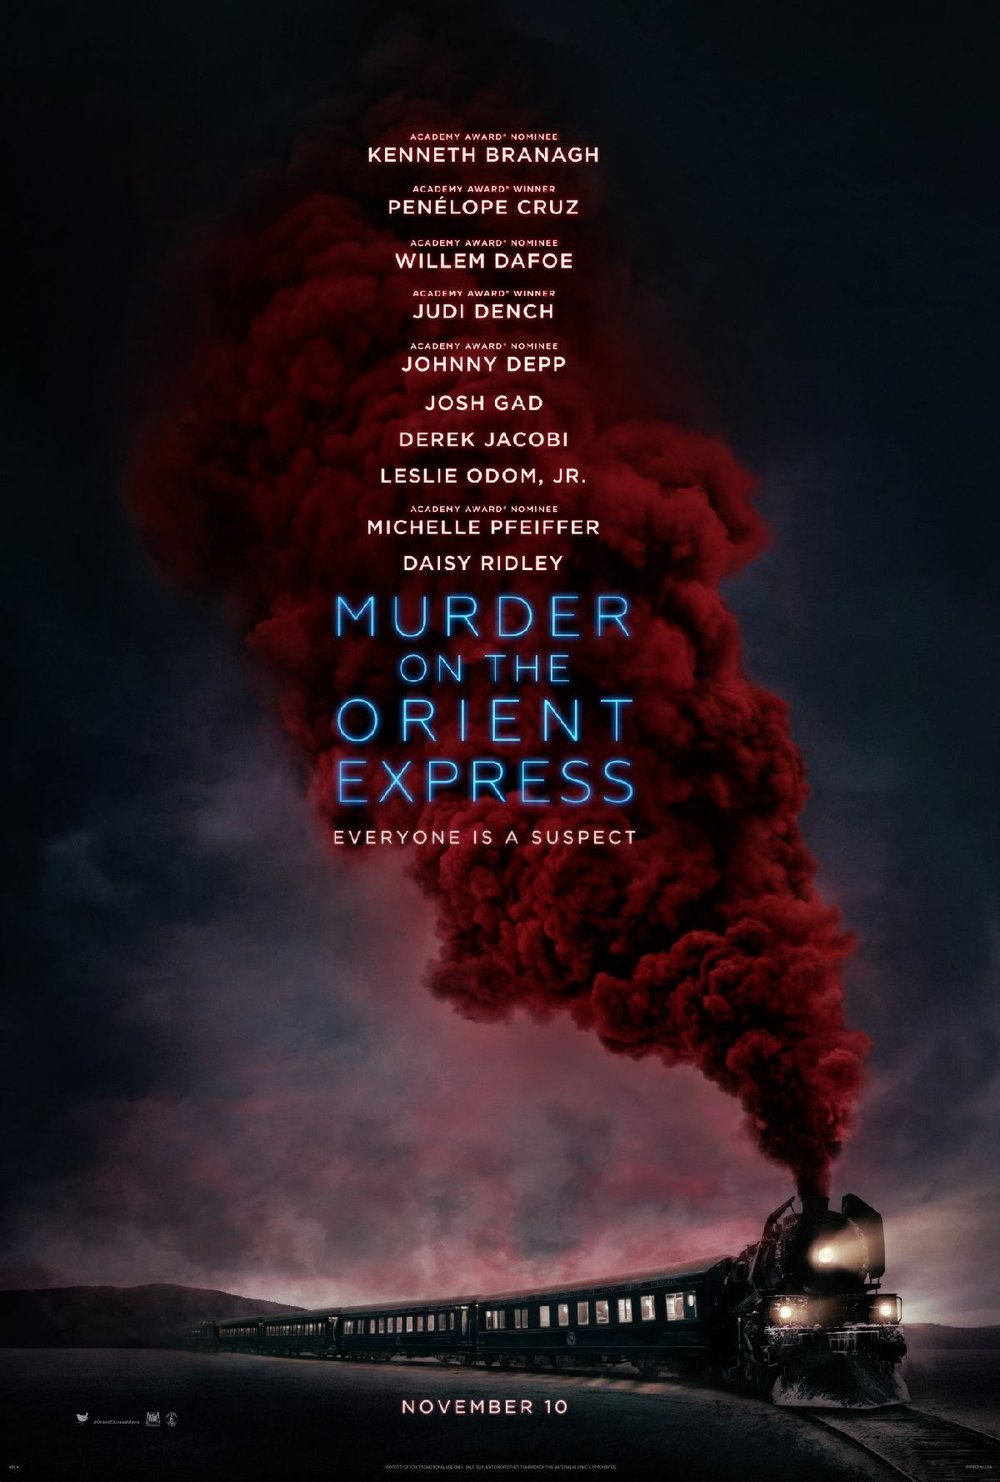 Murder-on-the-Orient-Express-poster-1.jpg